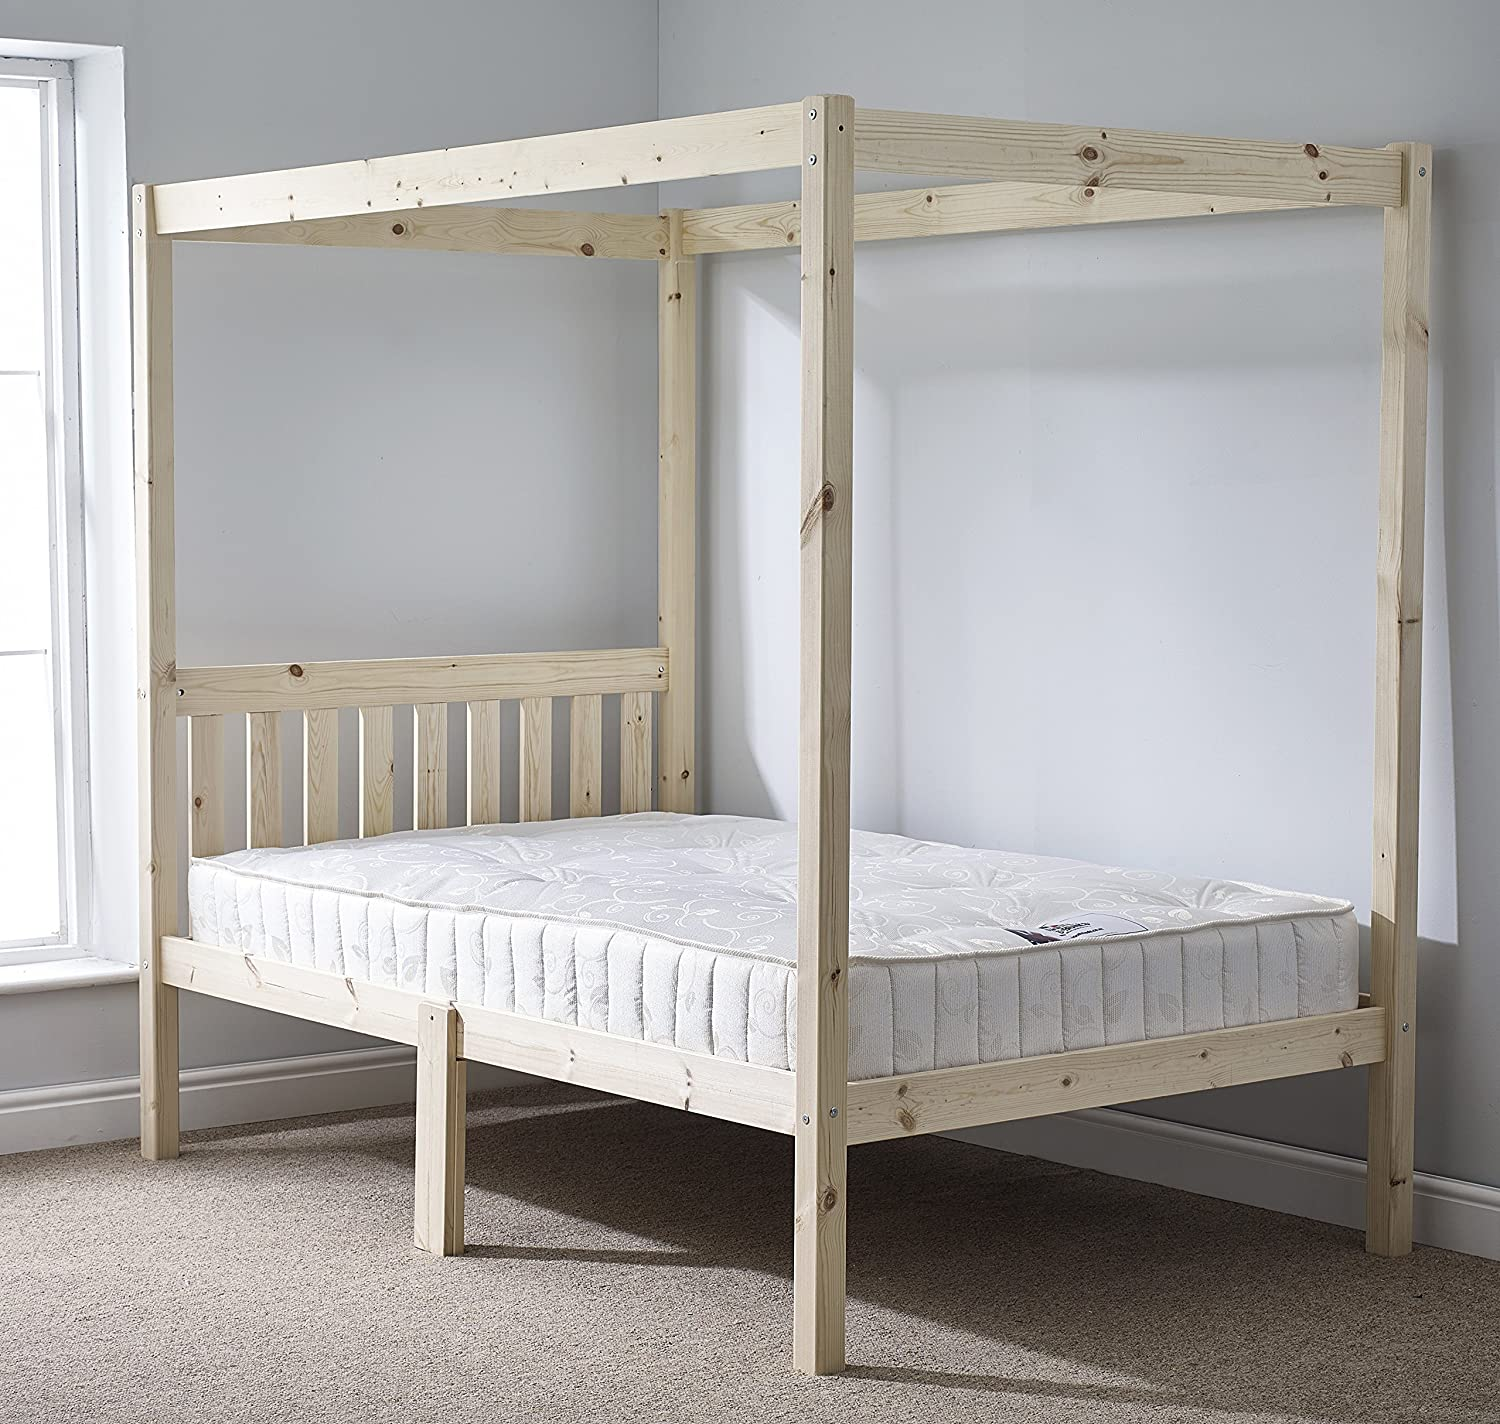 strictly beds and bunks limited four poster bed 5ft kingsize solid natural pine 4 poster bed frame extra wide base slats with centre rail amazon co uk